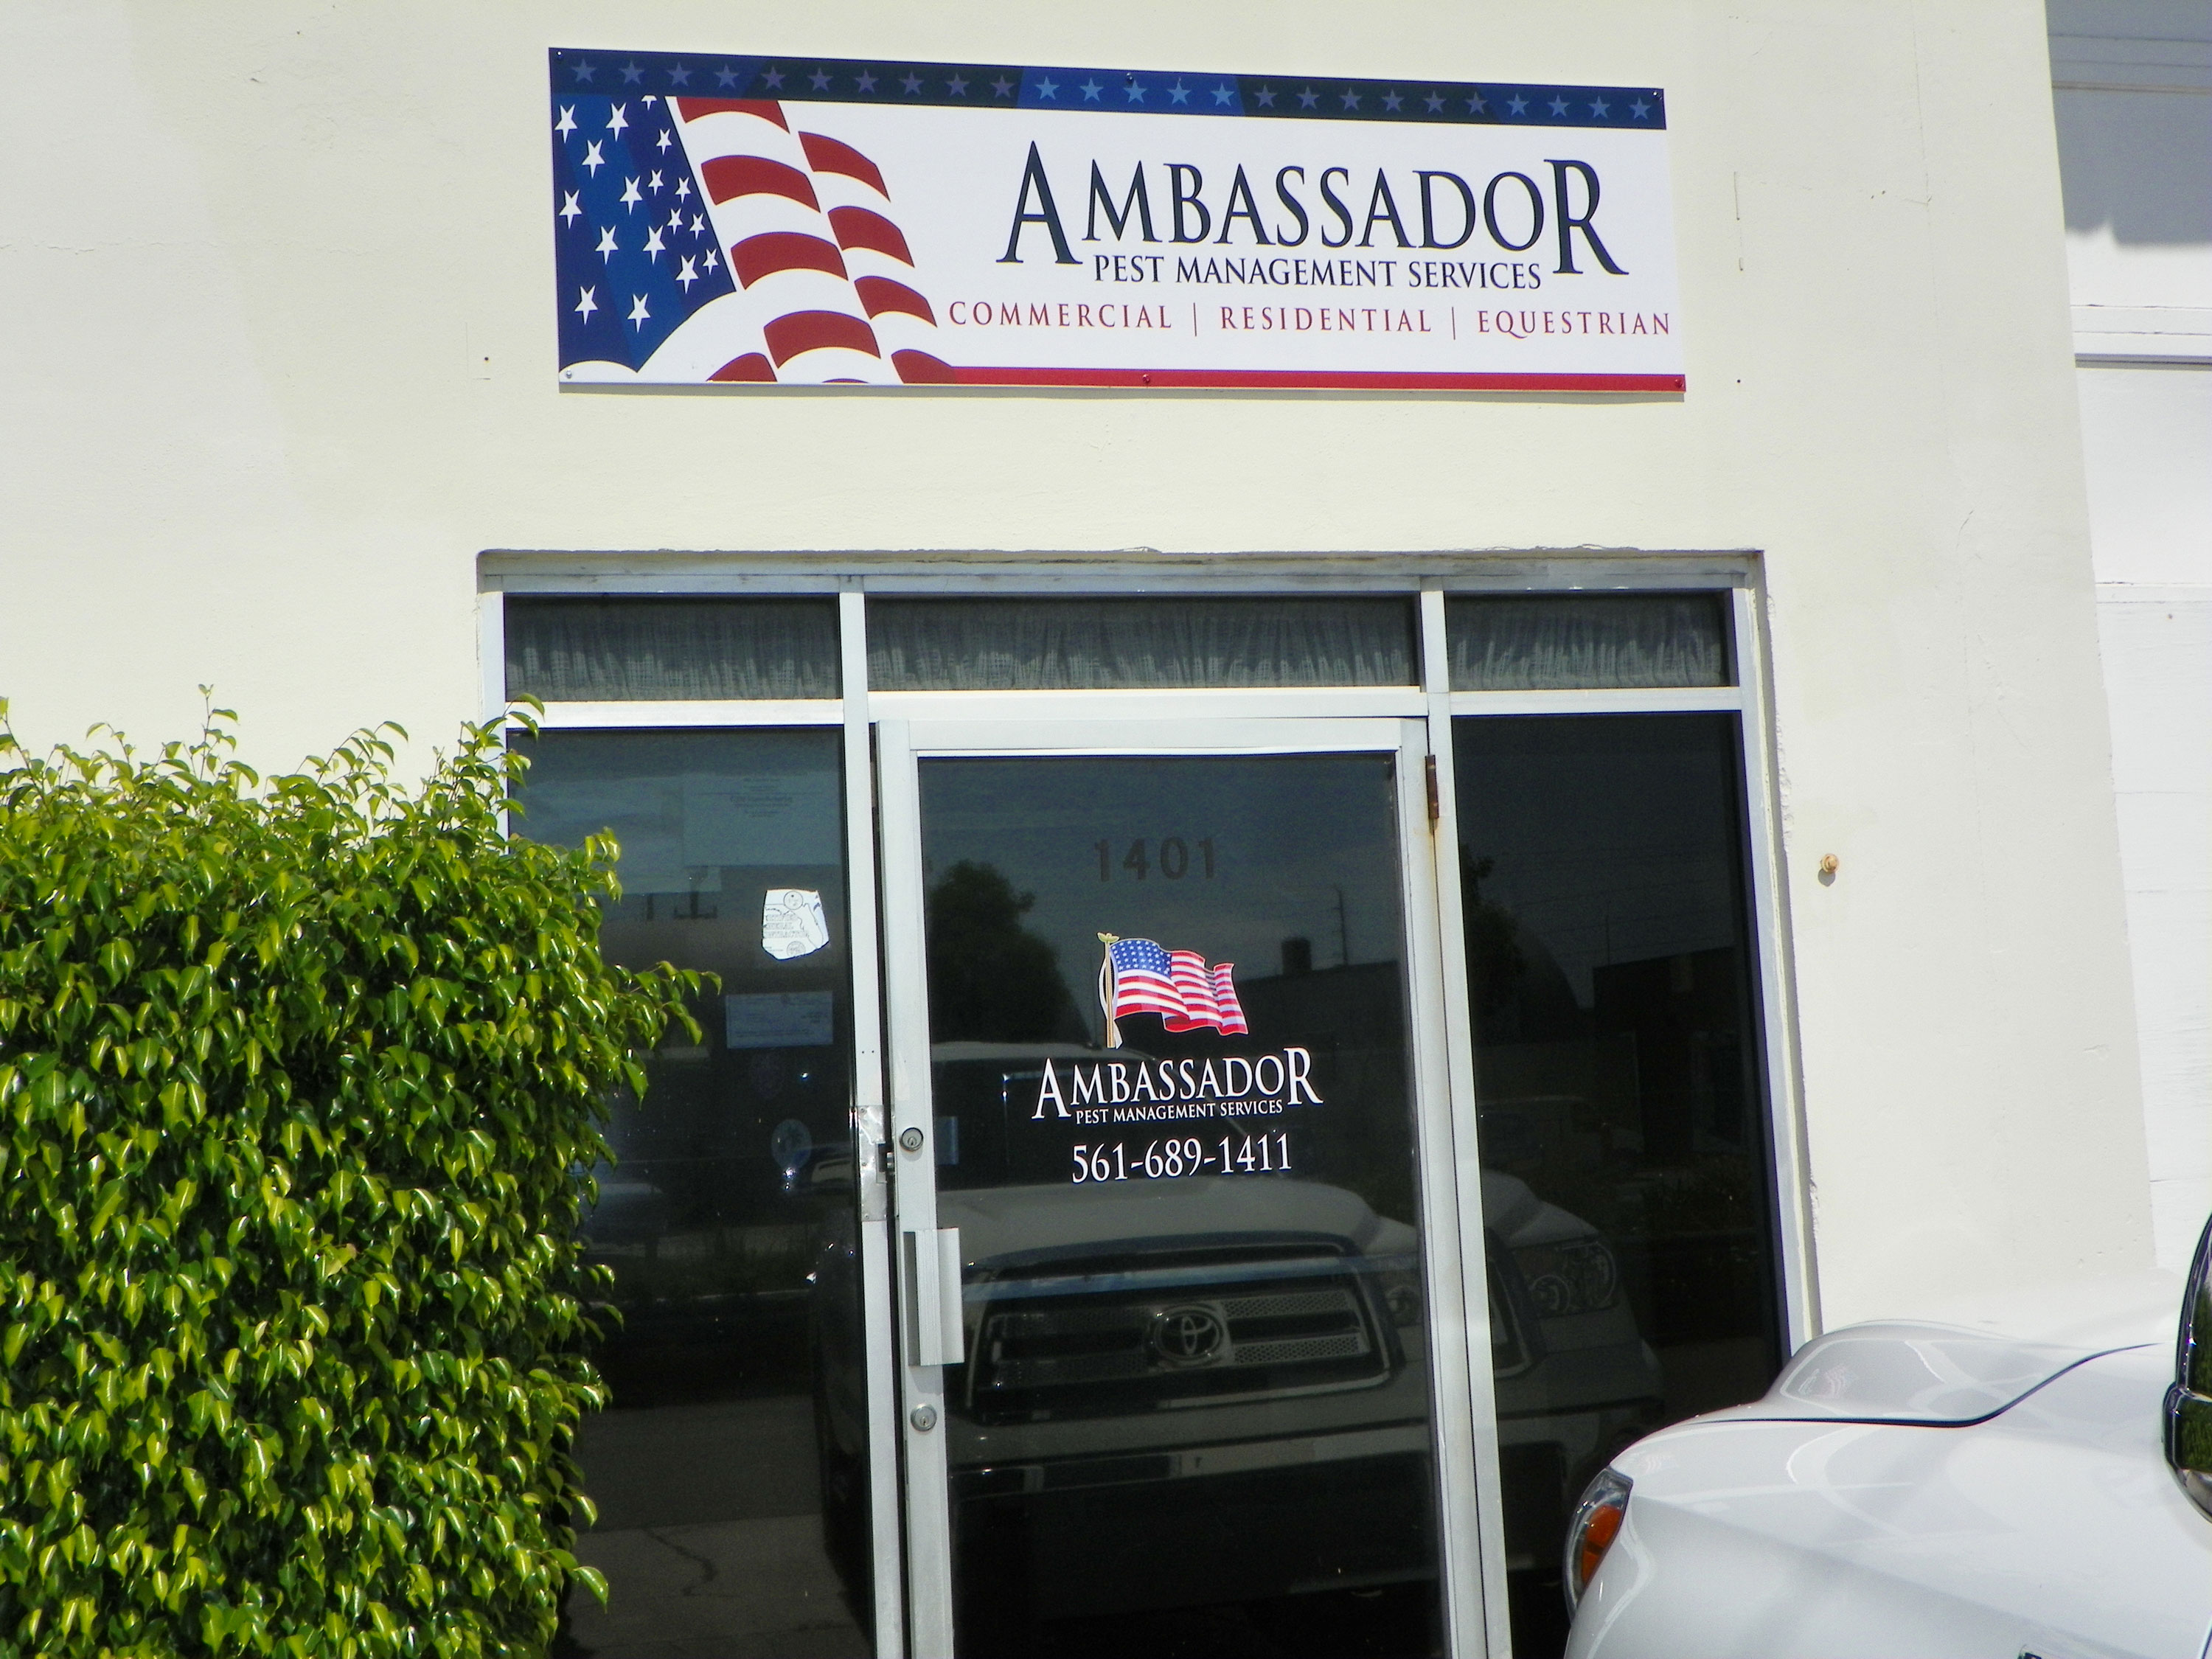 Ambassador Pest Management fifth image